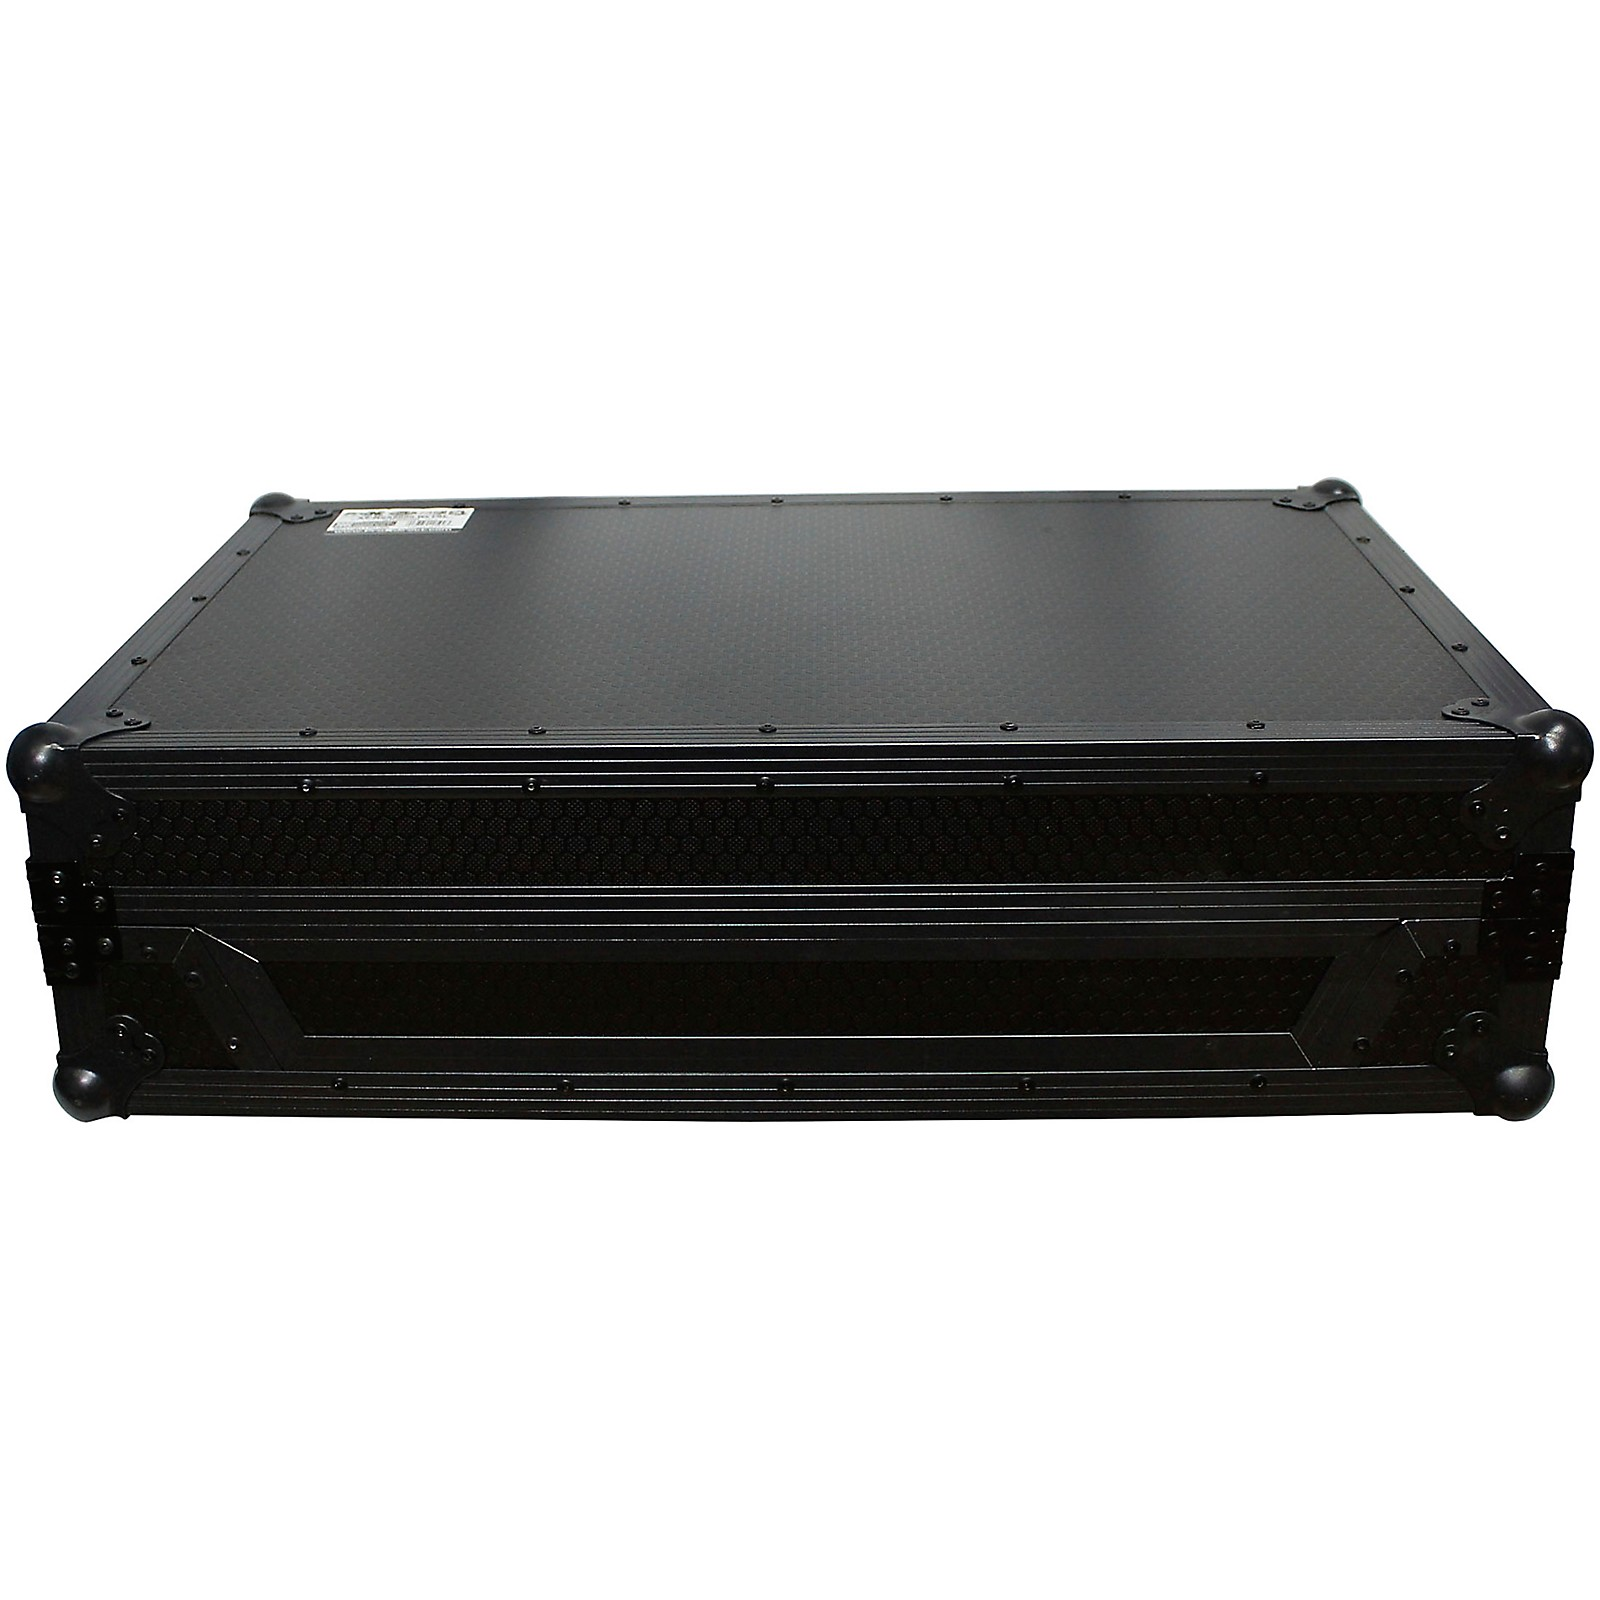 ProX XS-MCX8000WLT ATA Style Flight Road Case with Sliding Laptop Shelf and Wheels for Denon MCX8000